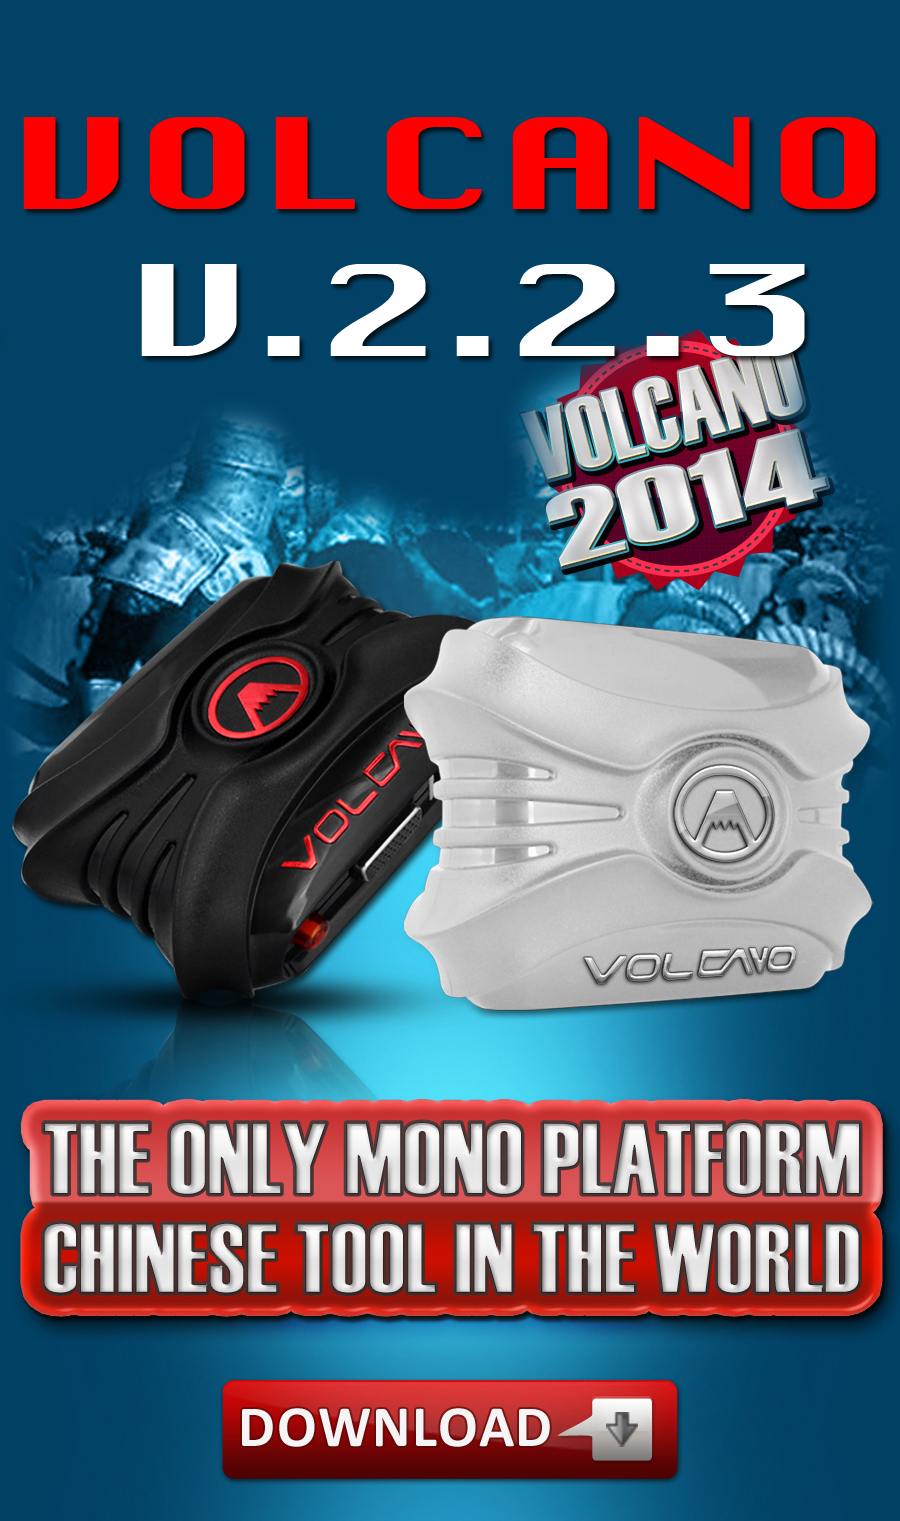 Volcano Box by Furious Team [Latest News and Updates]  - Page 2 2.2.3